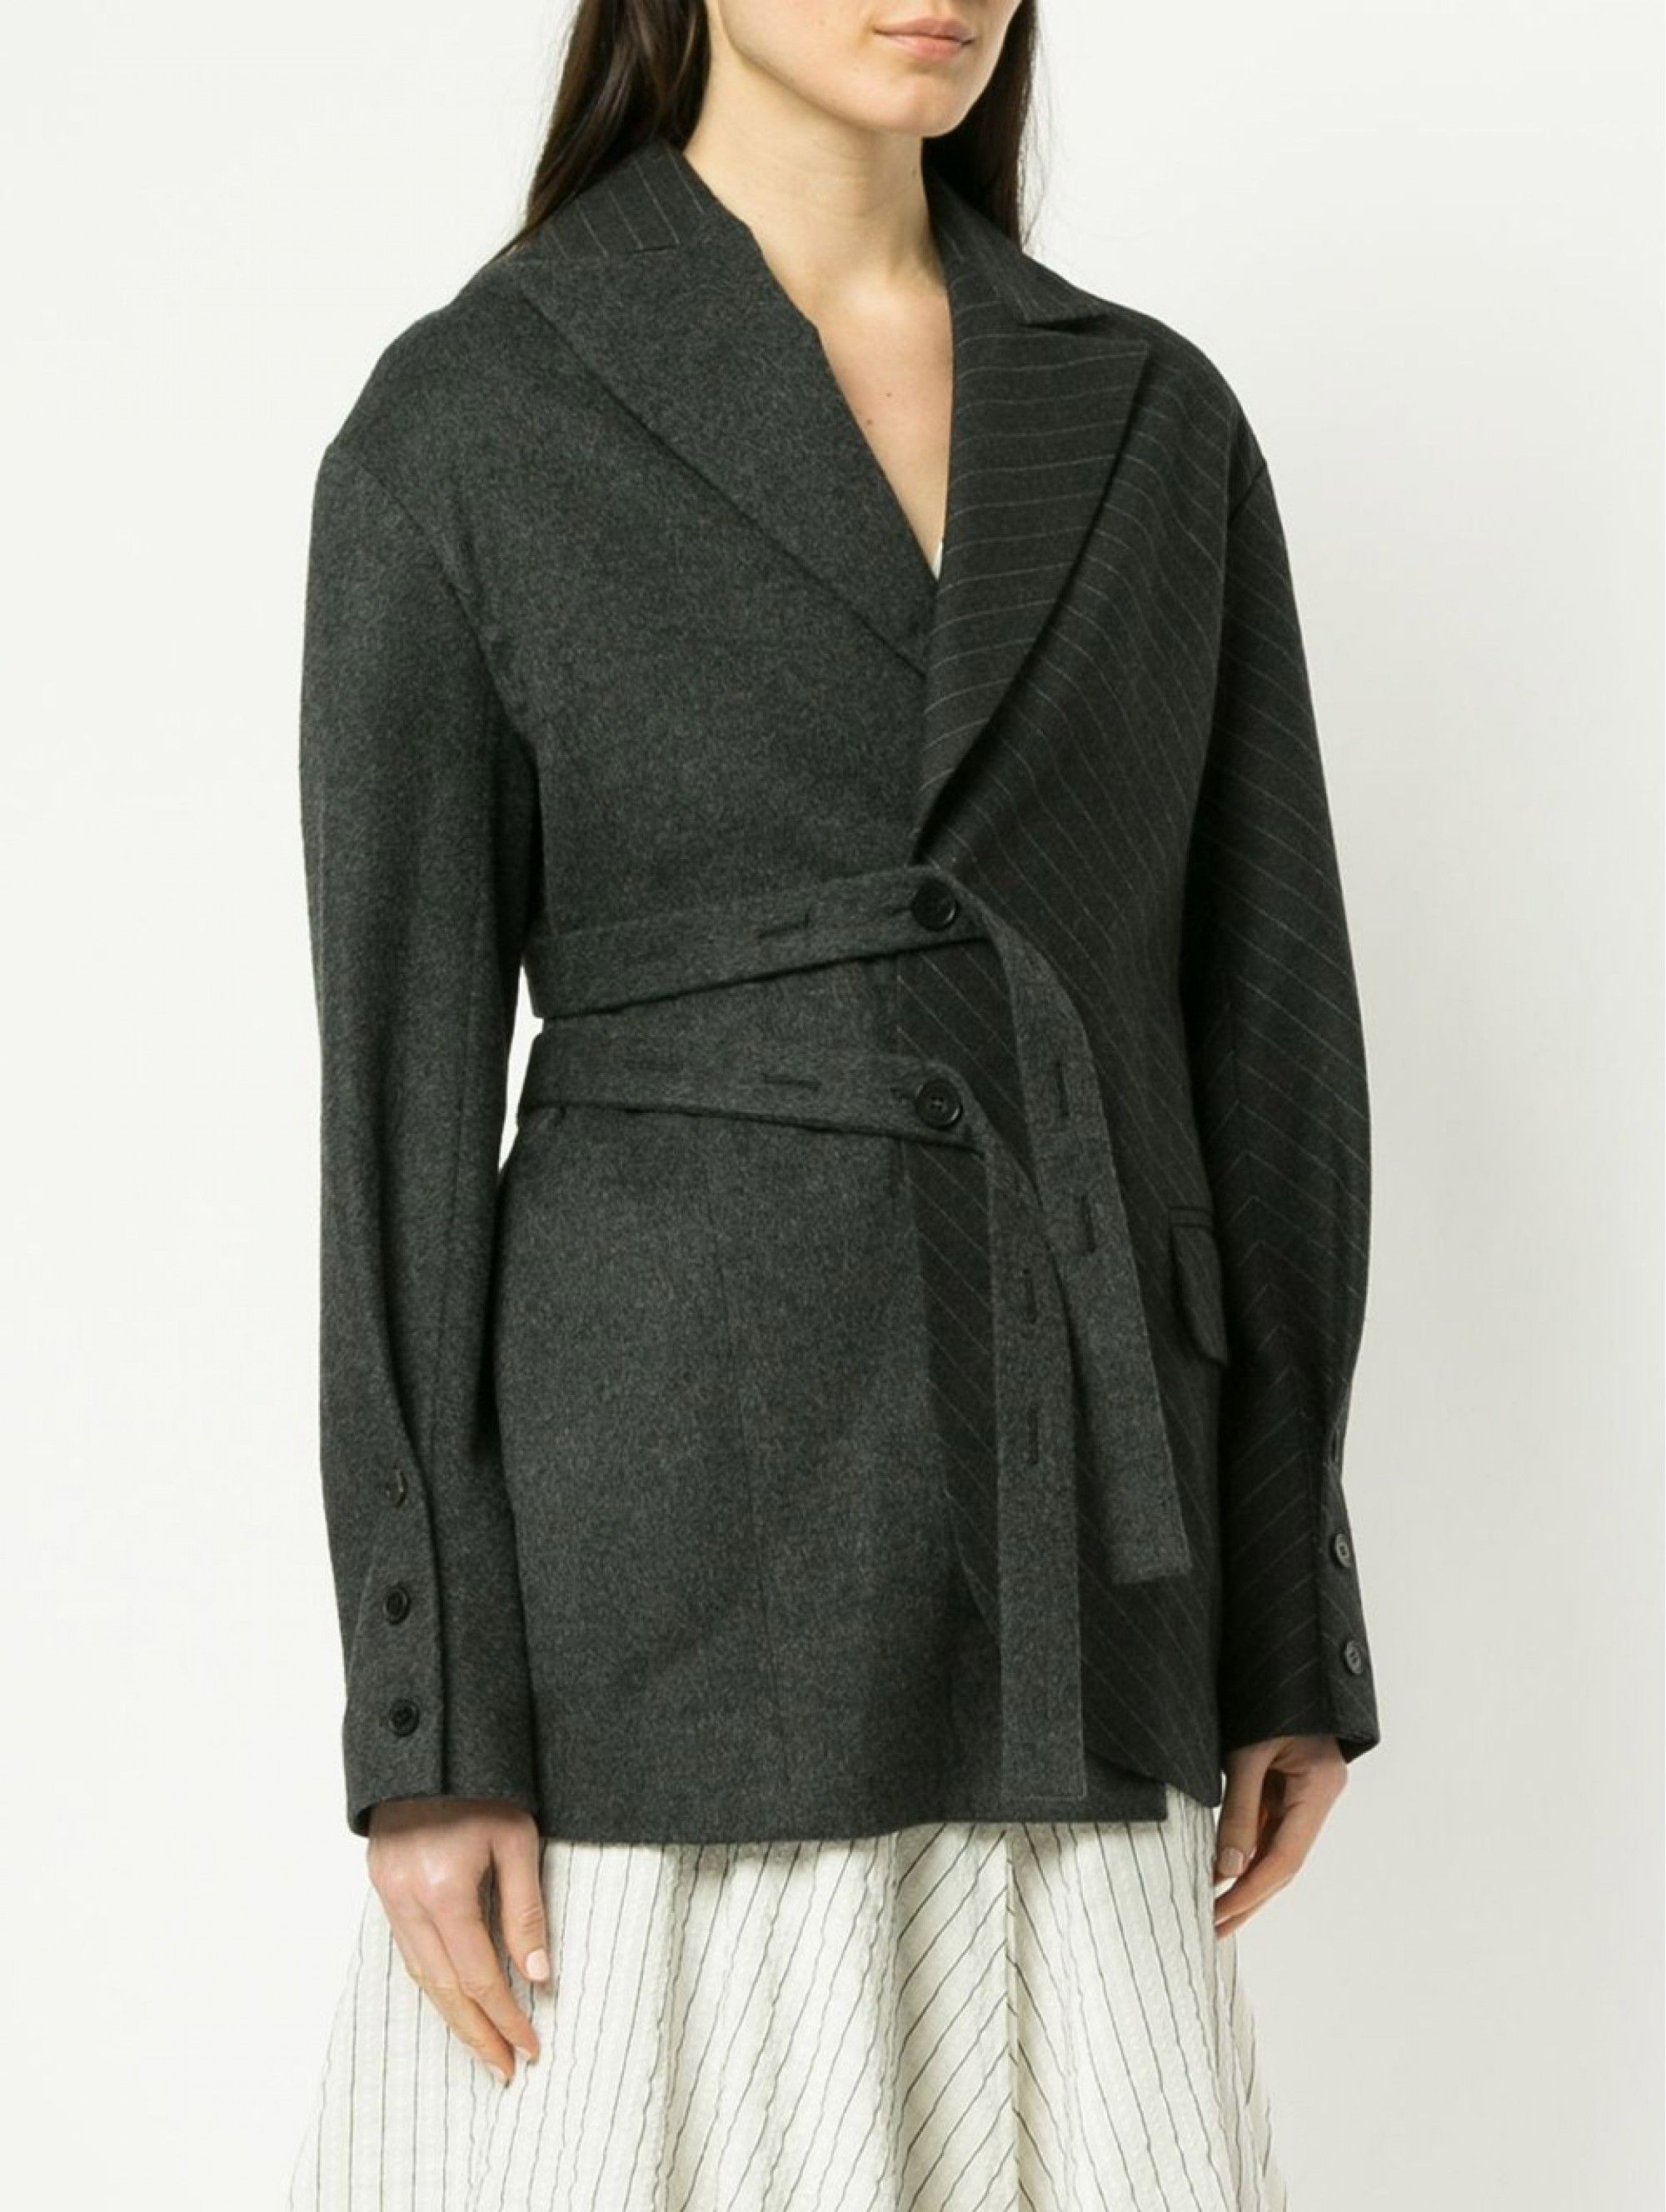 Ruban Oversized Jacket in Dark Grey